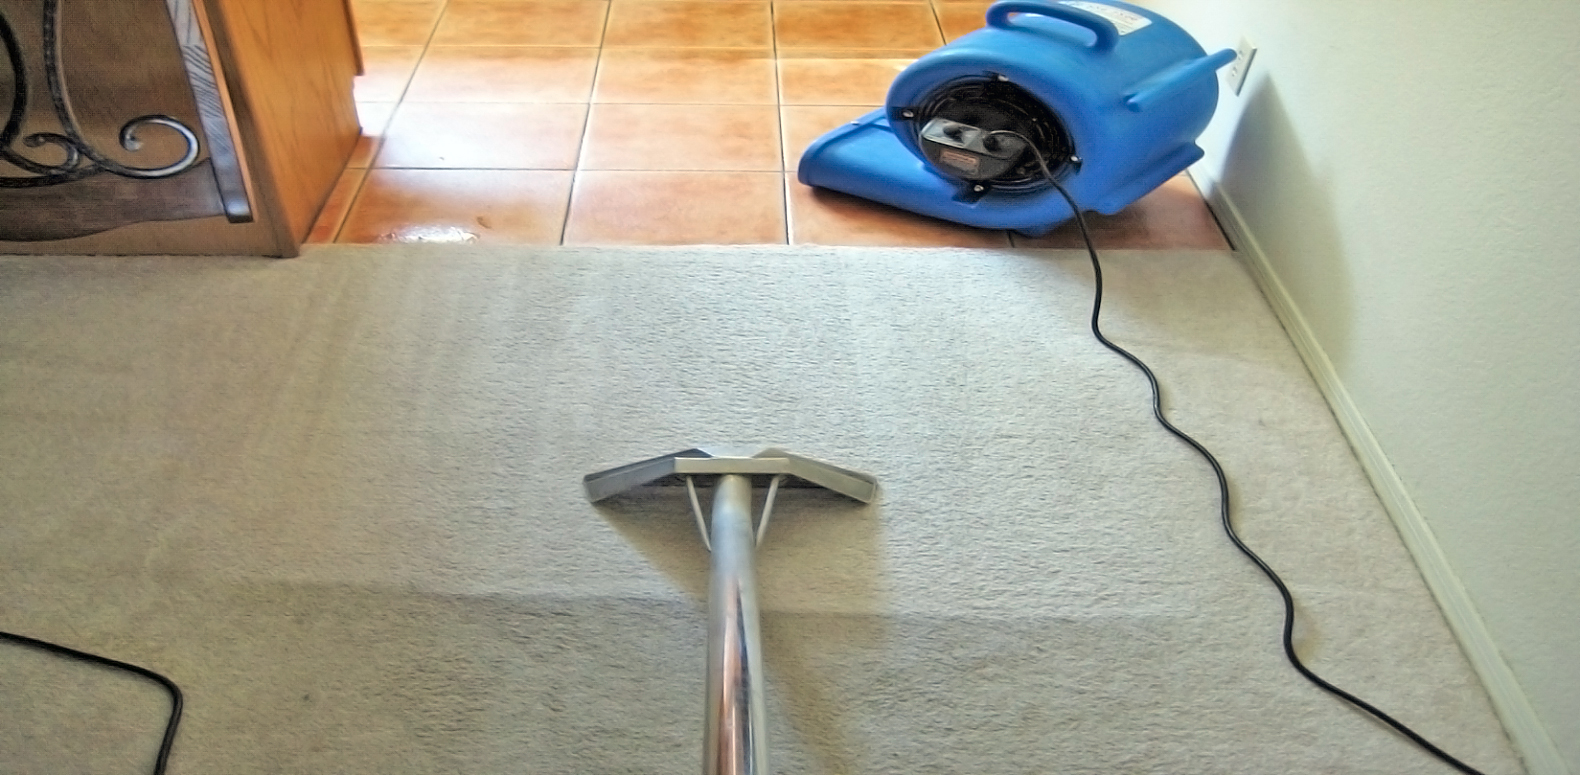 Carpet Cleaning Kingswood